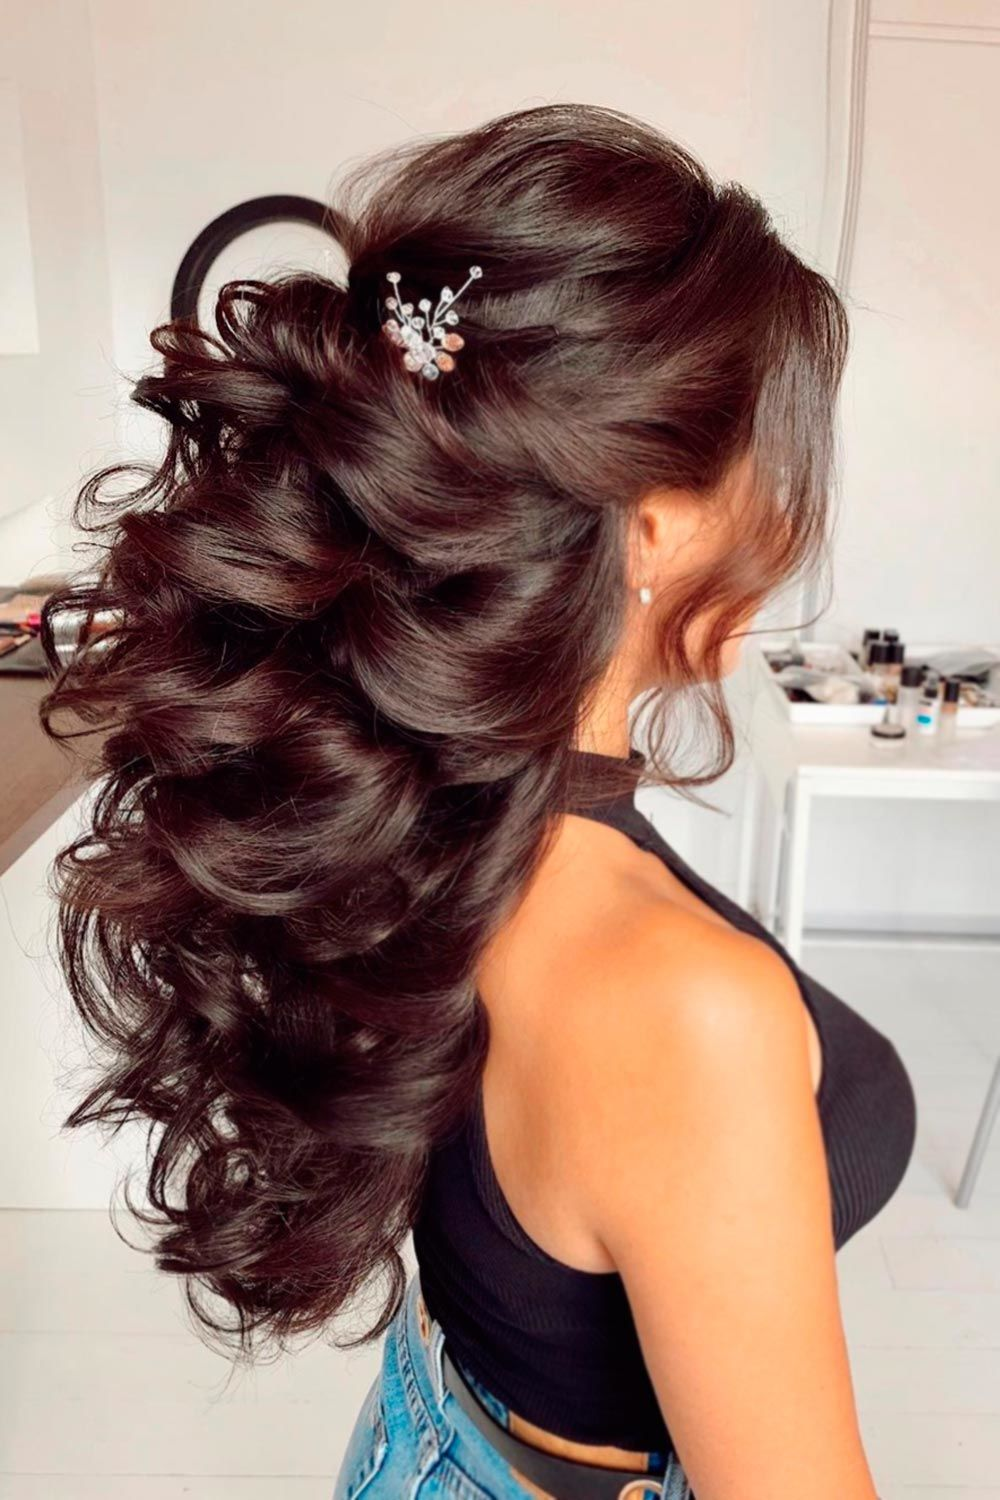 Royal Wedding Curls For Thick Hair